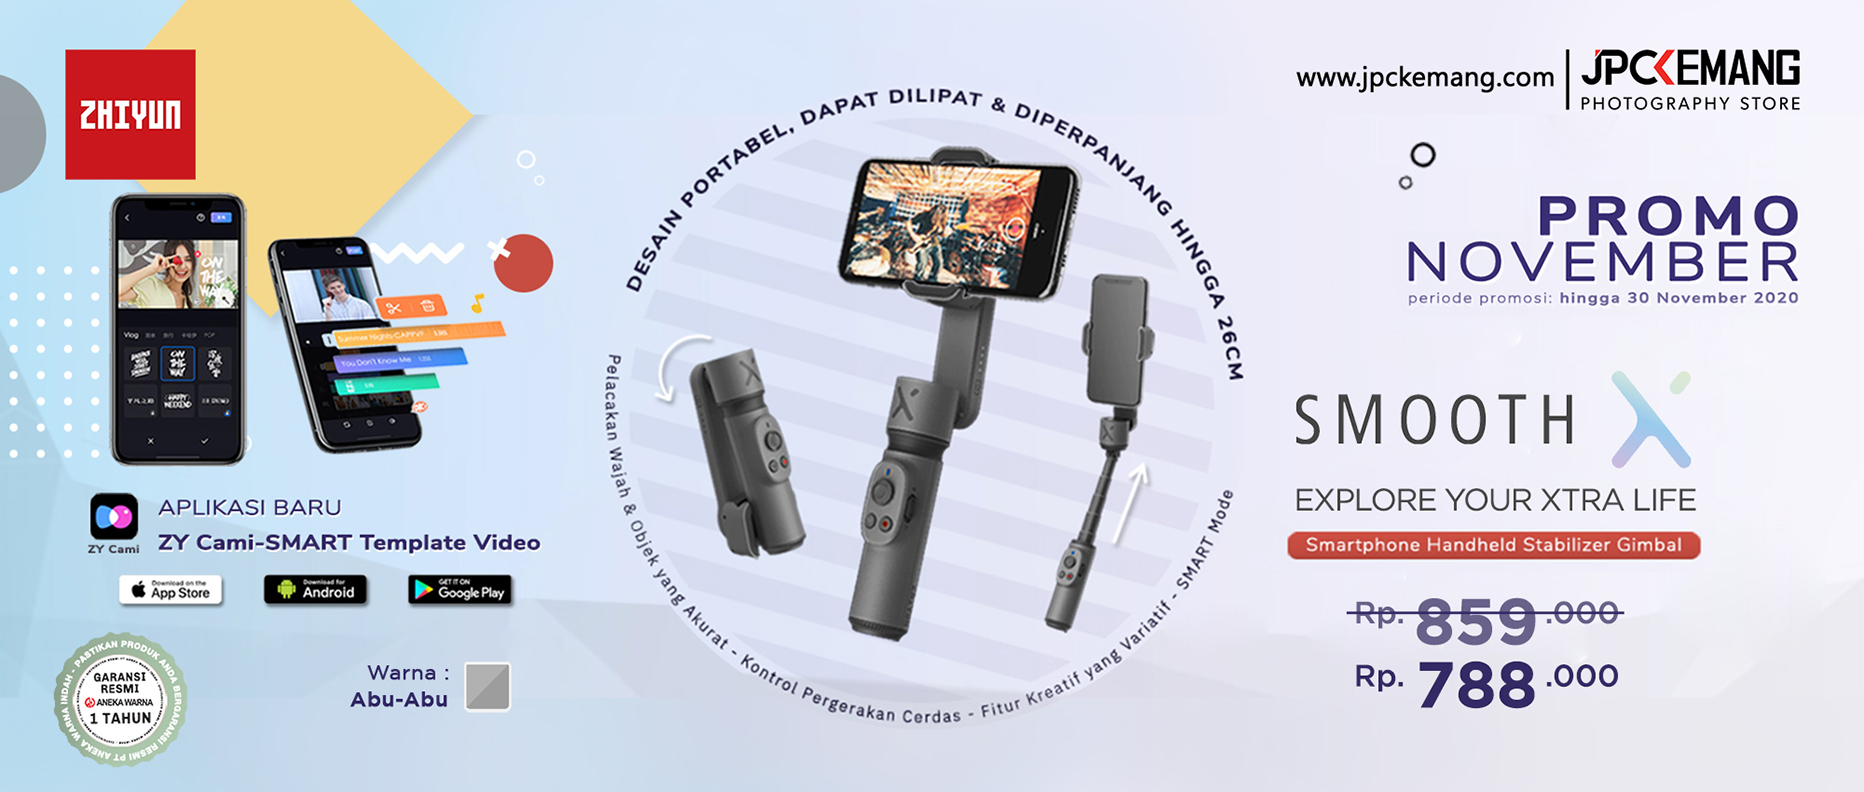 Zhiyun Smooth X Gimbal Stabilizer For Smartphone